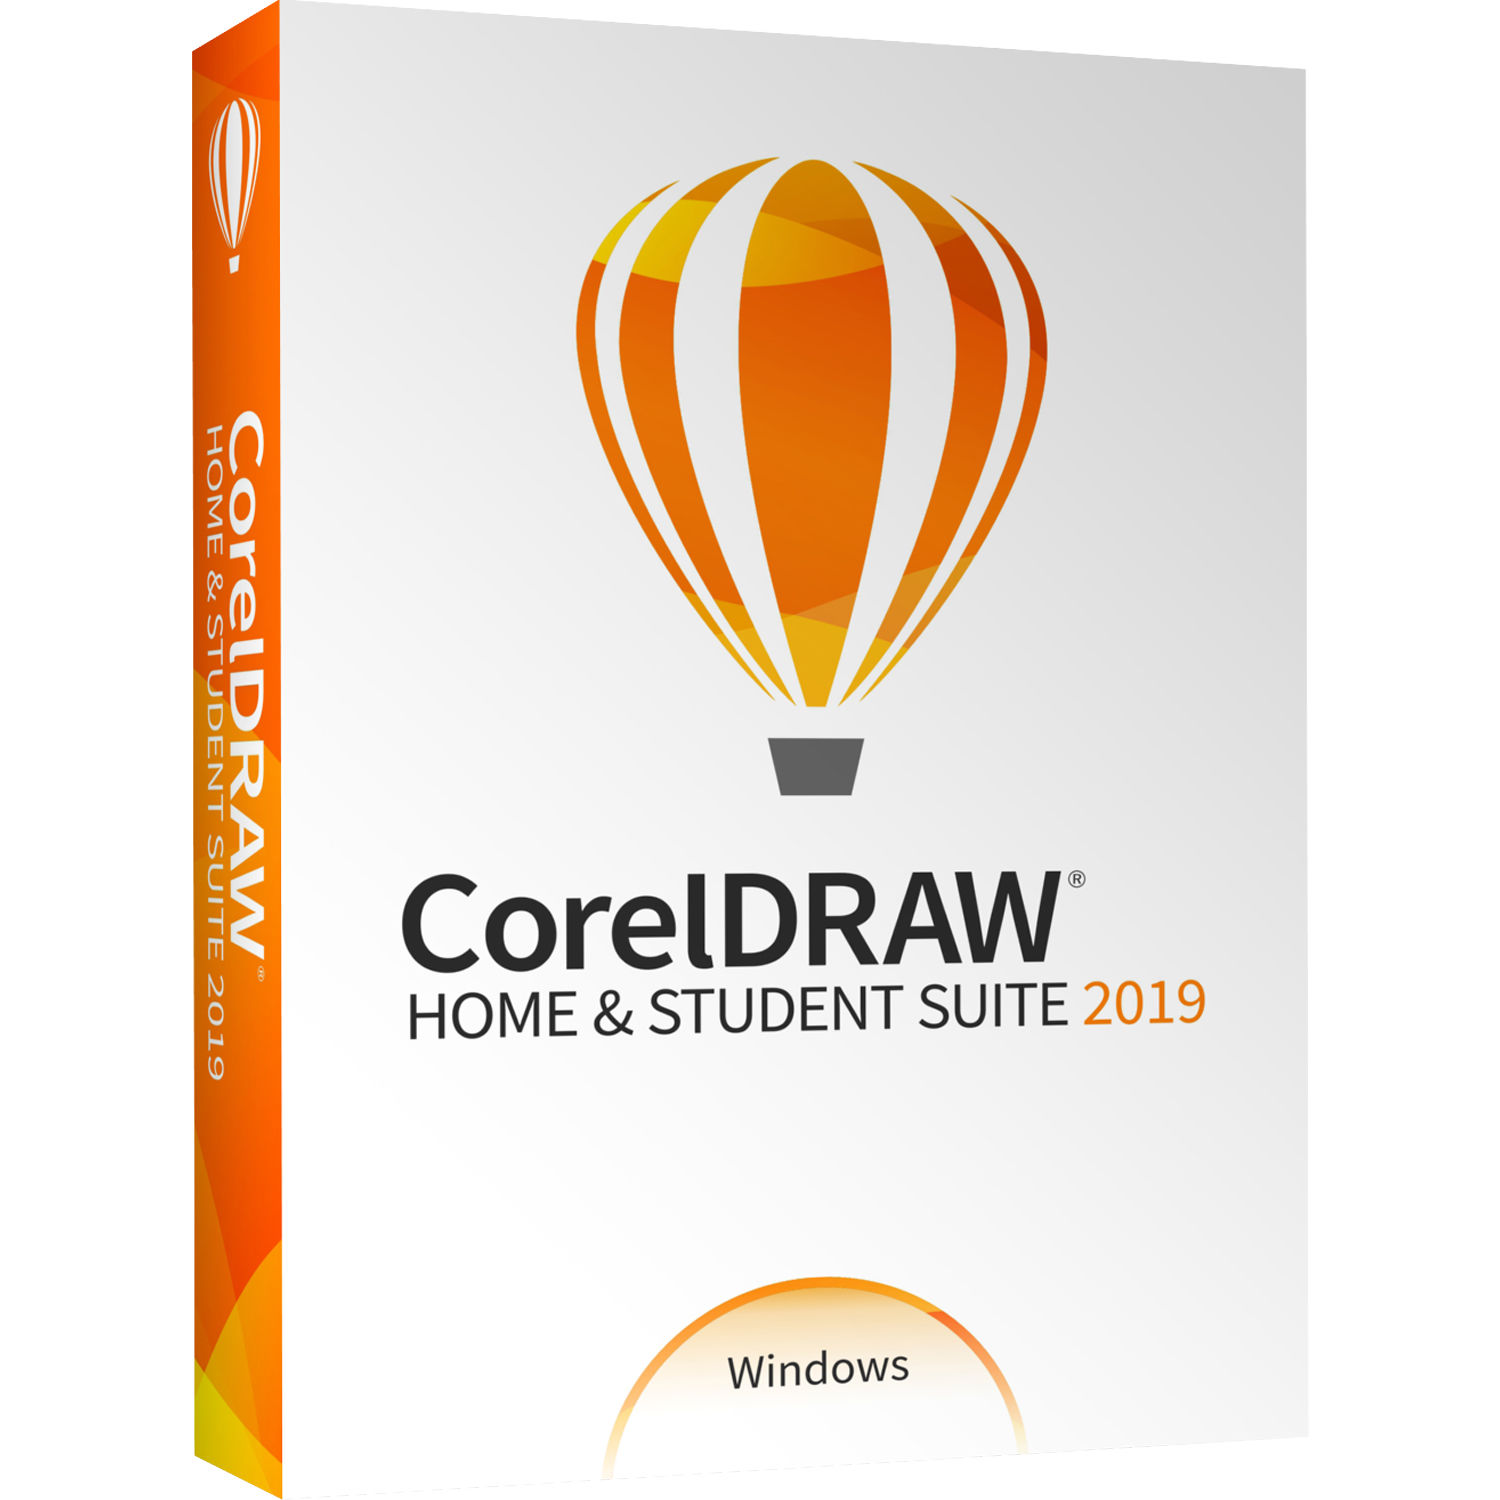 CorelDRAW Home & Student Suite 2019 (Boxed).